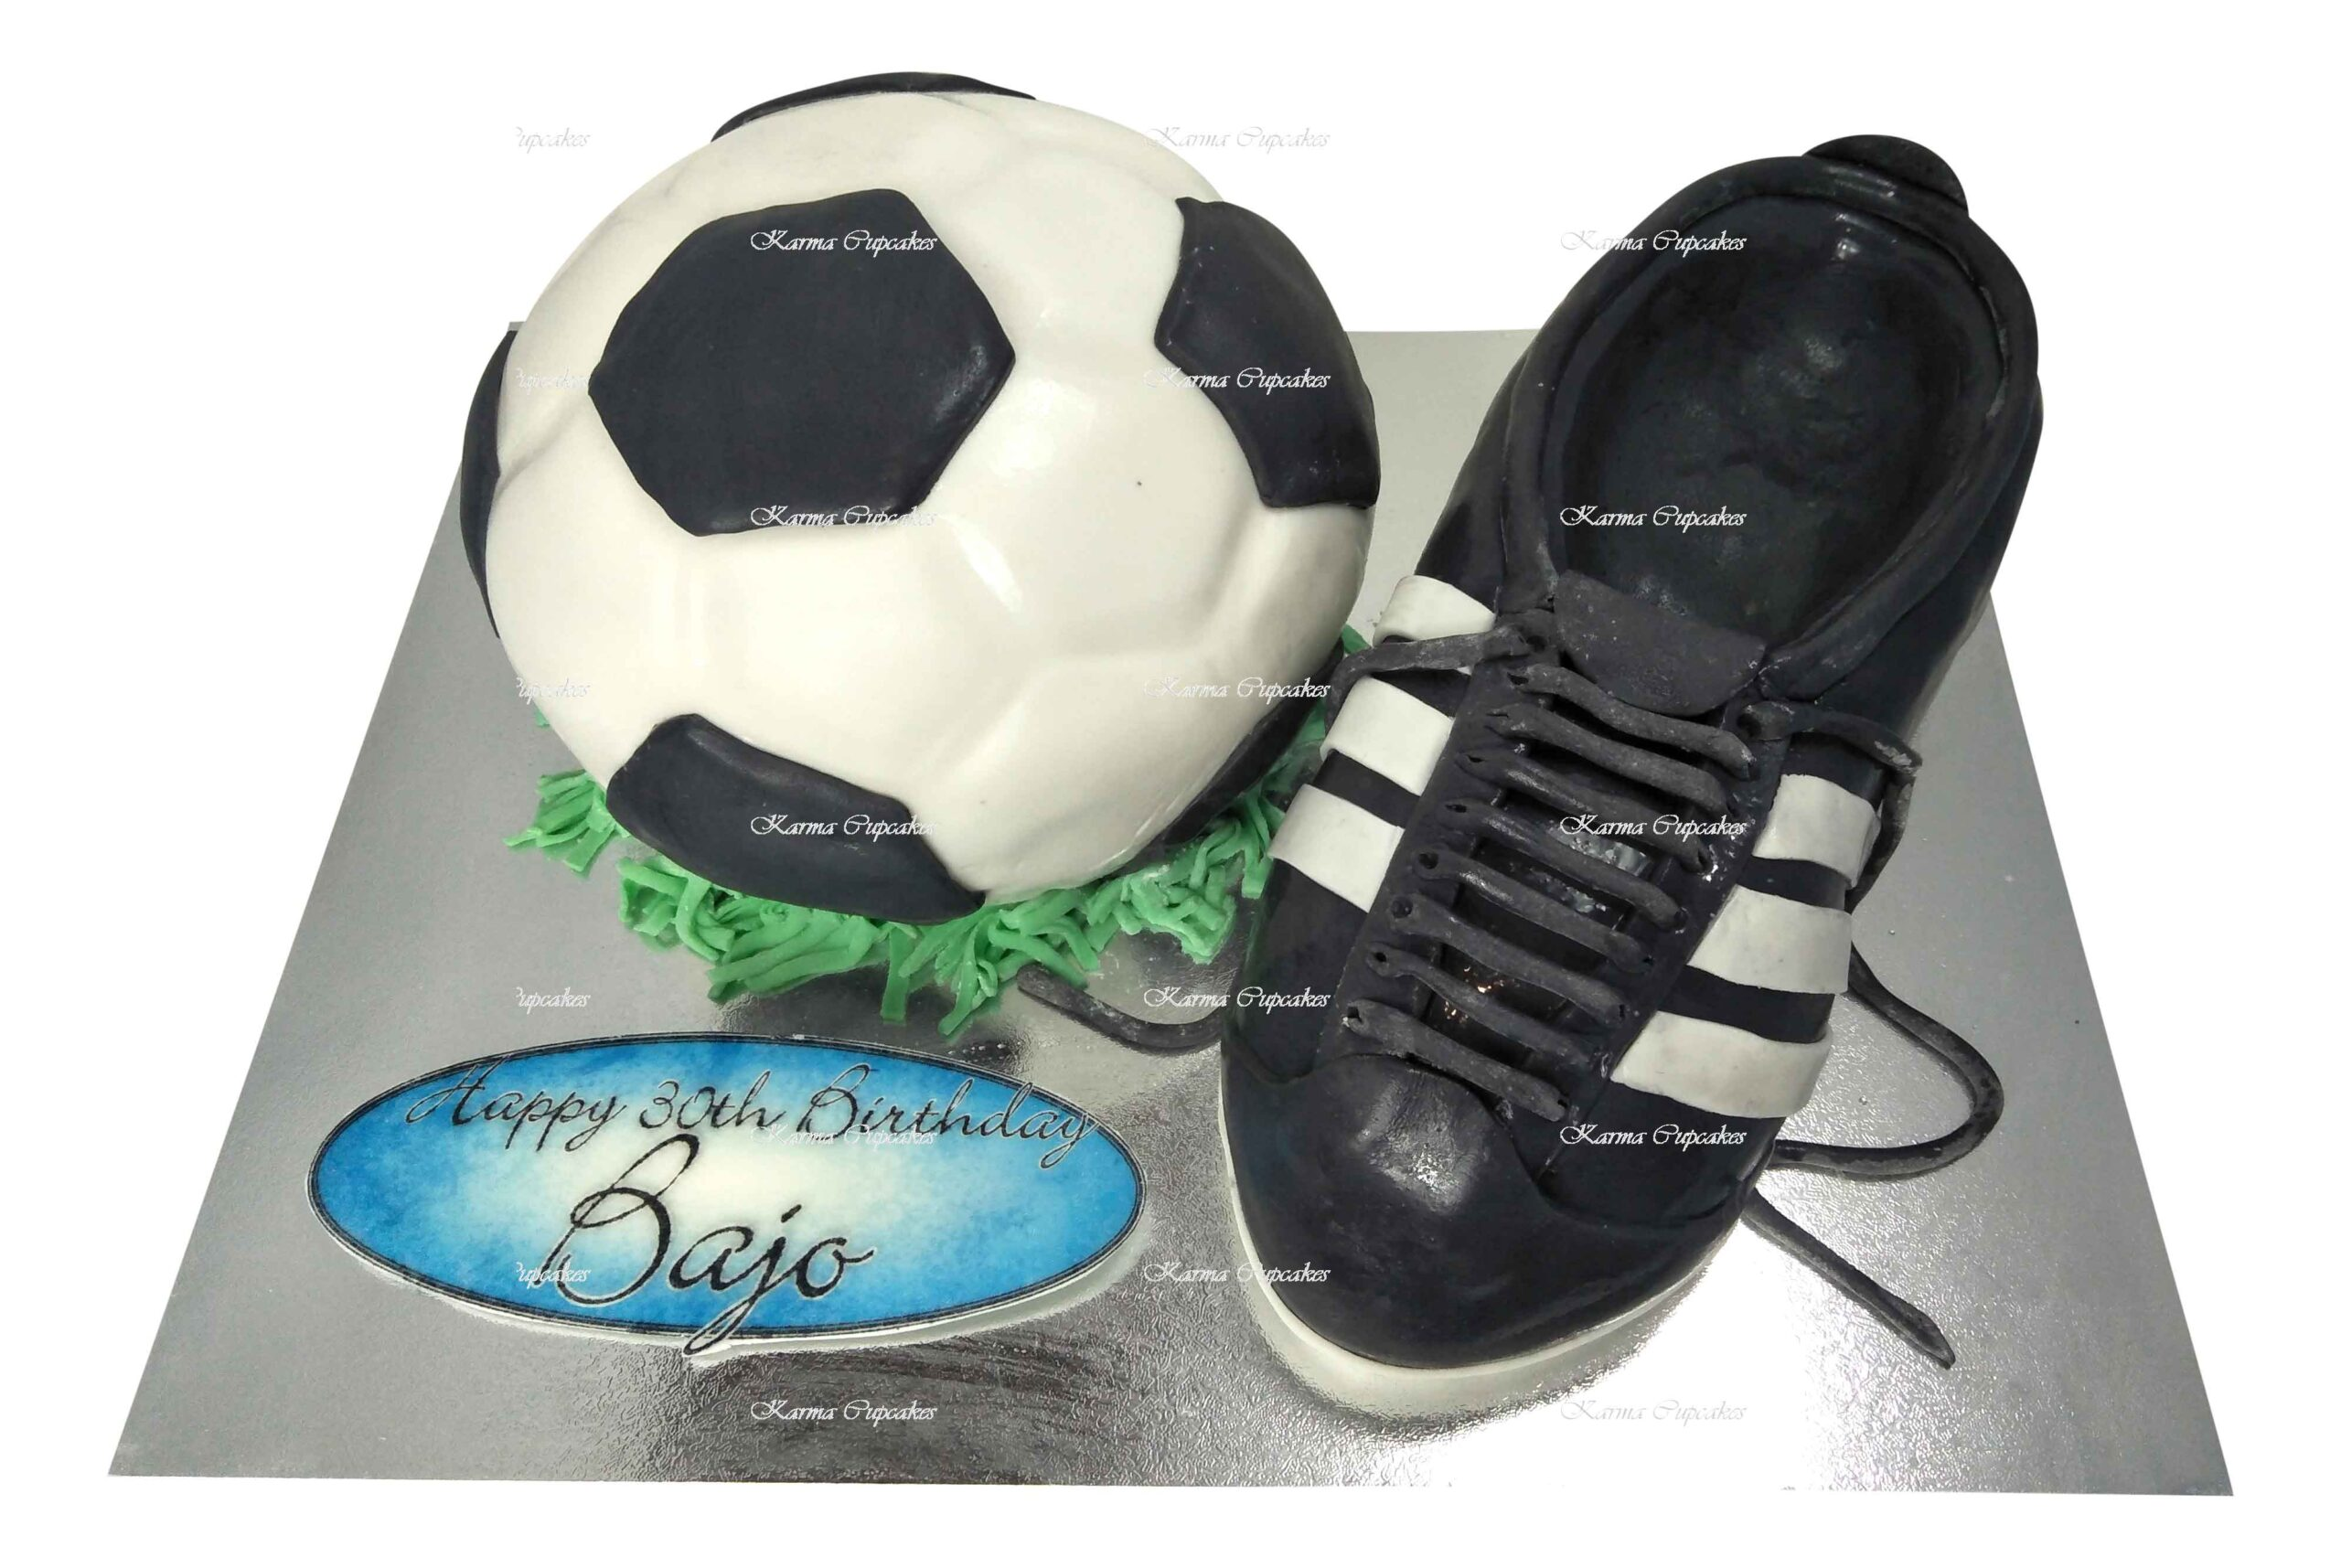 Cakes for Blokes